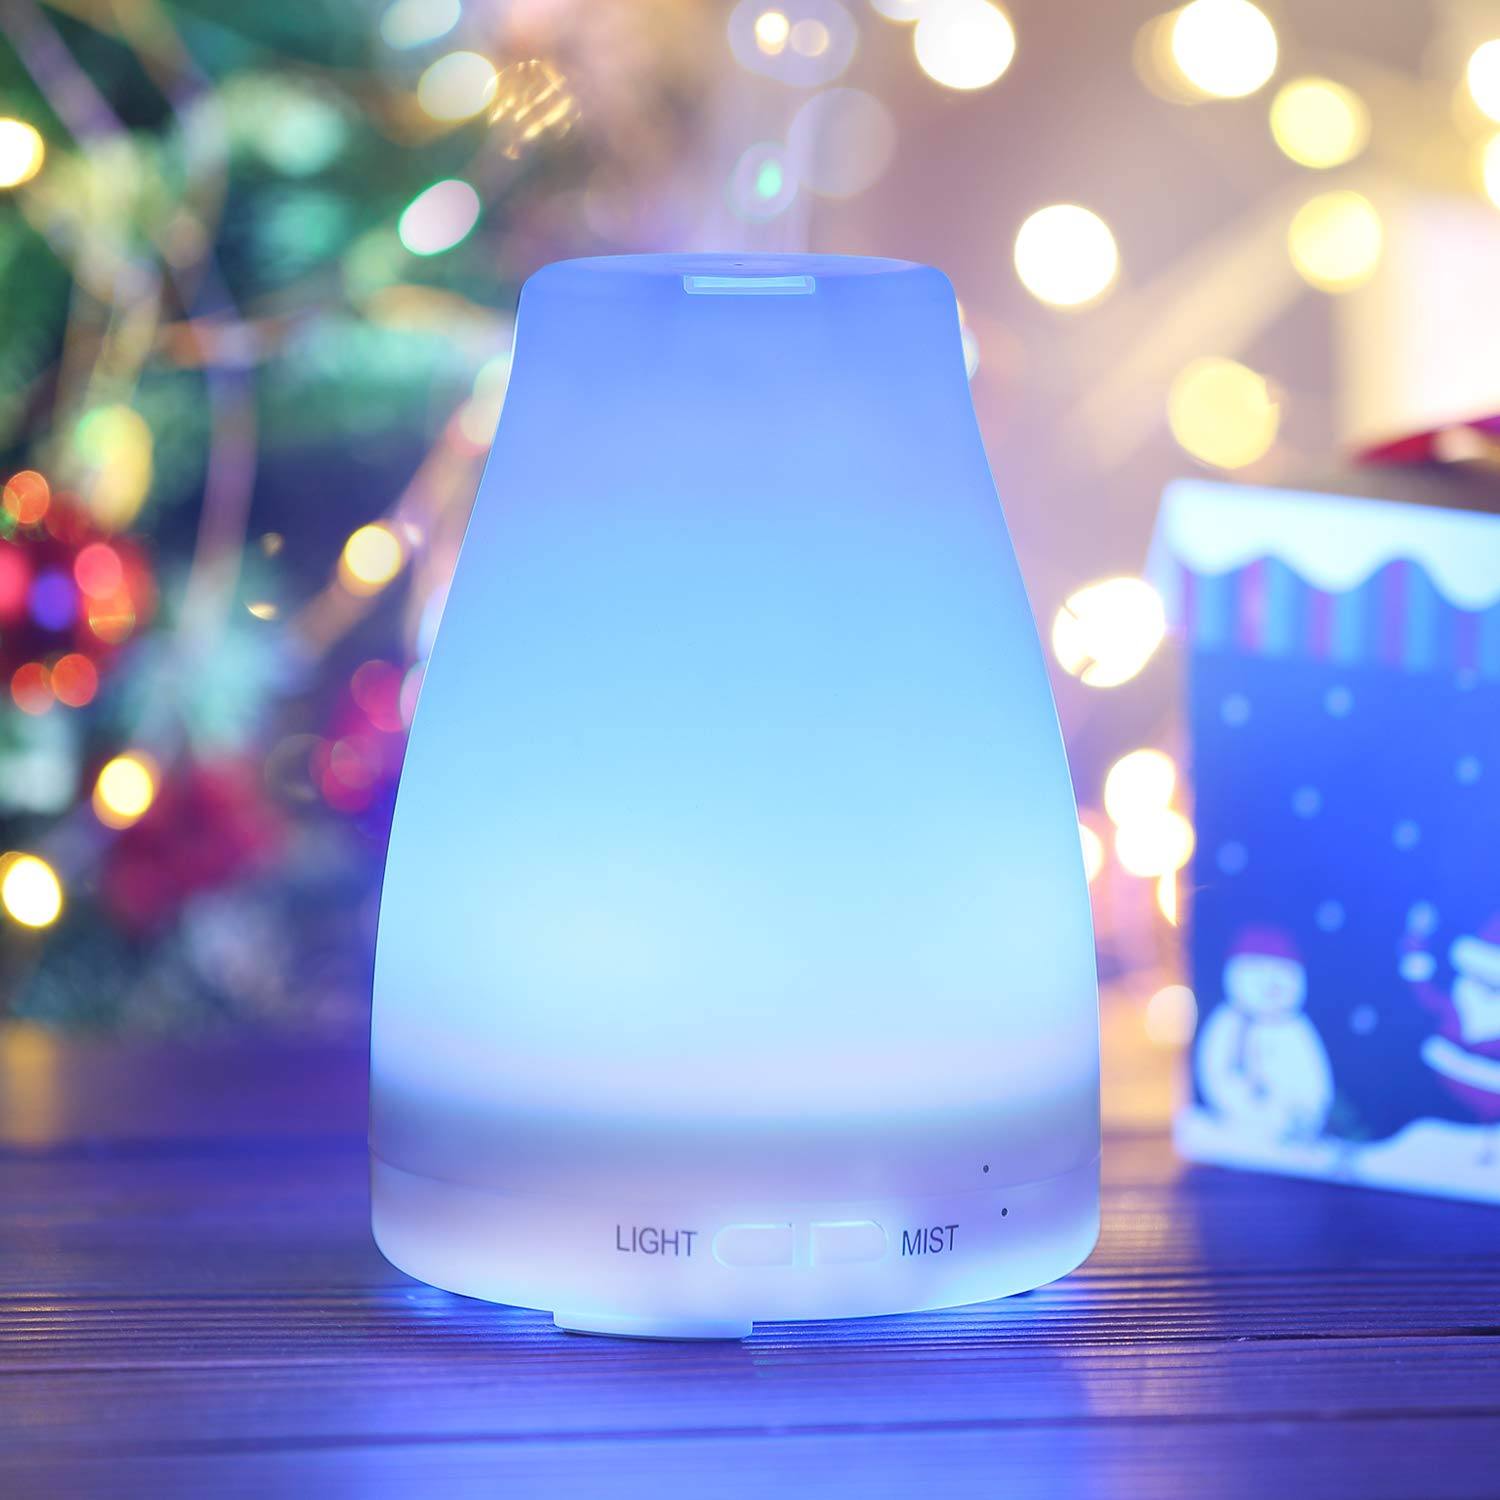 Criacr 100ml Essential Oil Diffuser, Aromatherapy Ultrasonic Mist Air Humidifier with 7 Changeable Colored LED Lights, Adjustable Mist Mode, Waterless Automatically Shut-off, Whisper-Quiet for Home, Yoga, Bedroom